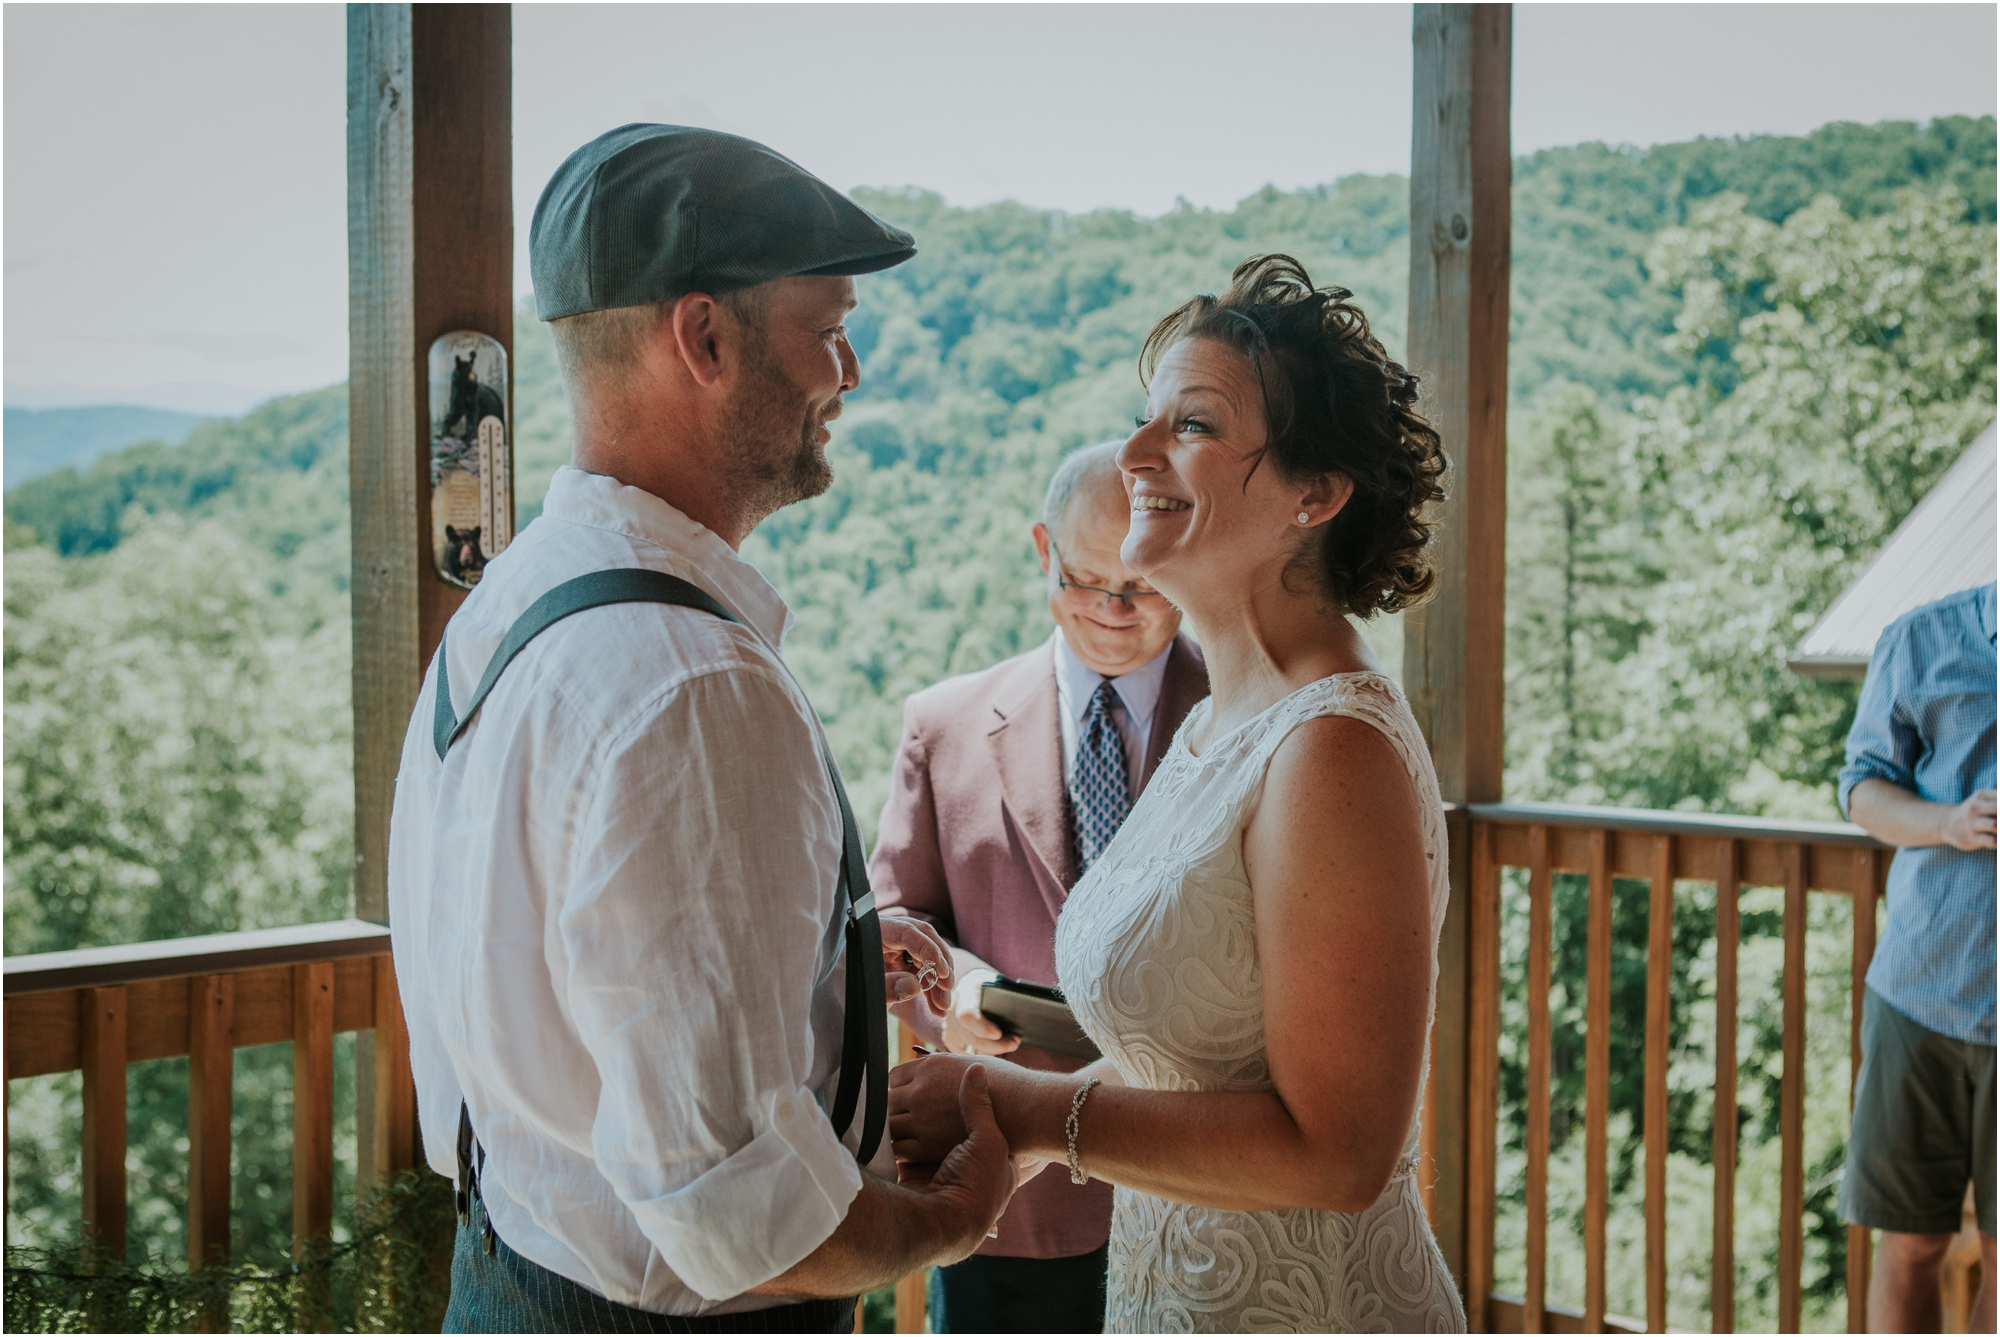 cabin-parkside-resort-the-magnolia-venue-tennessee-mountain-views-intimate-wedding_0138.jpg